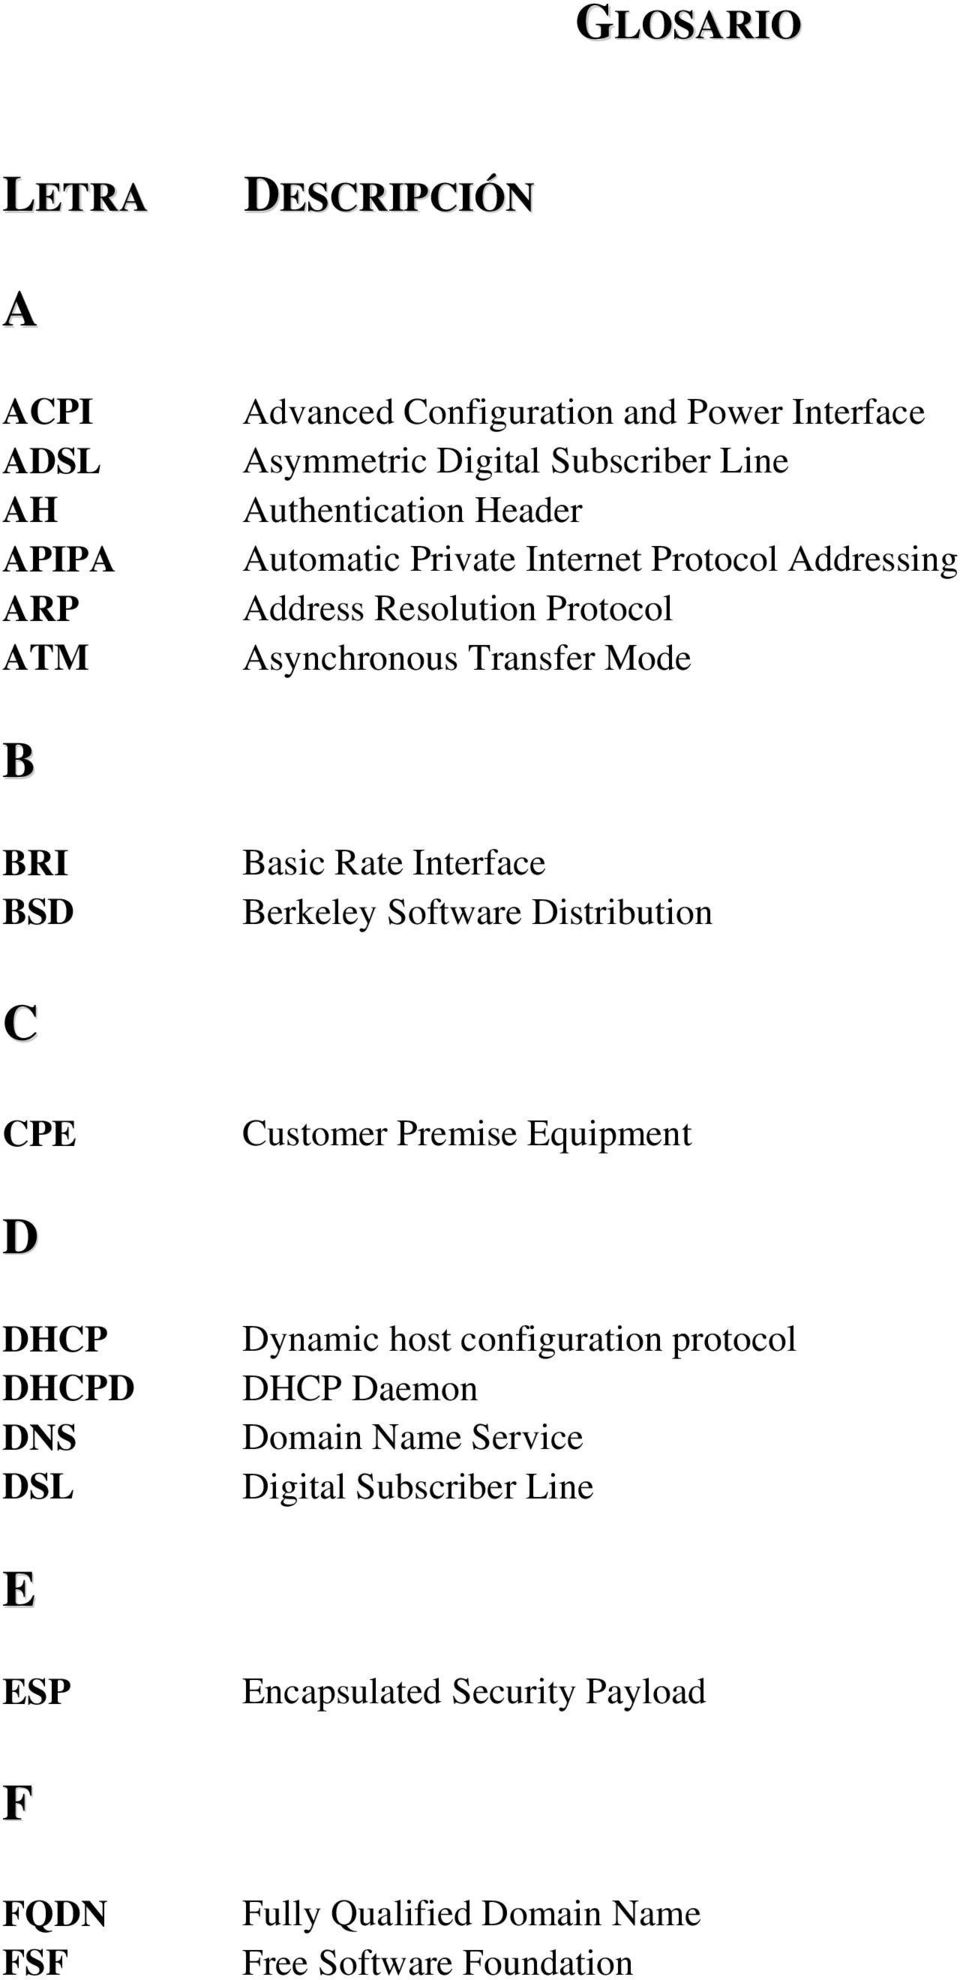 Rate Interface Berkeley Software Distribution C CPE Customer Premise Equipment D DHCP DHCPD DNS DSL Dynamic host configuration protocol DHCP